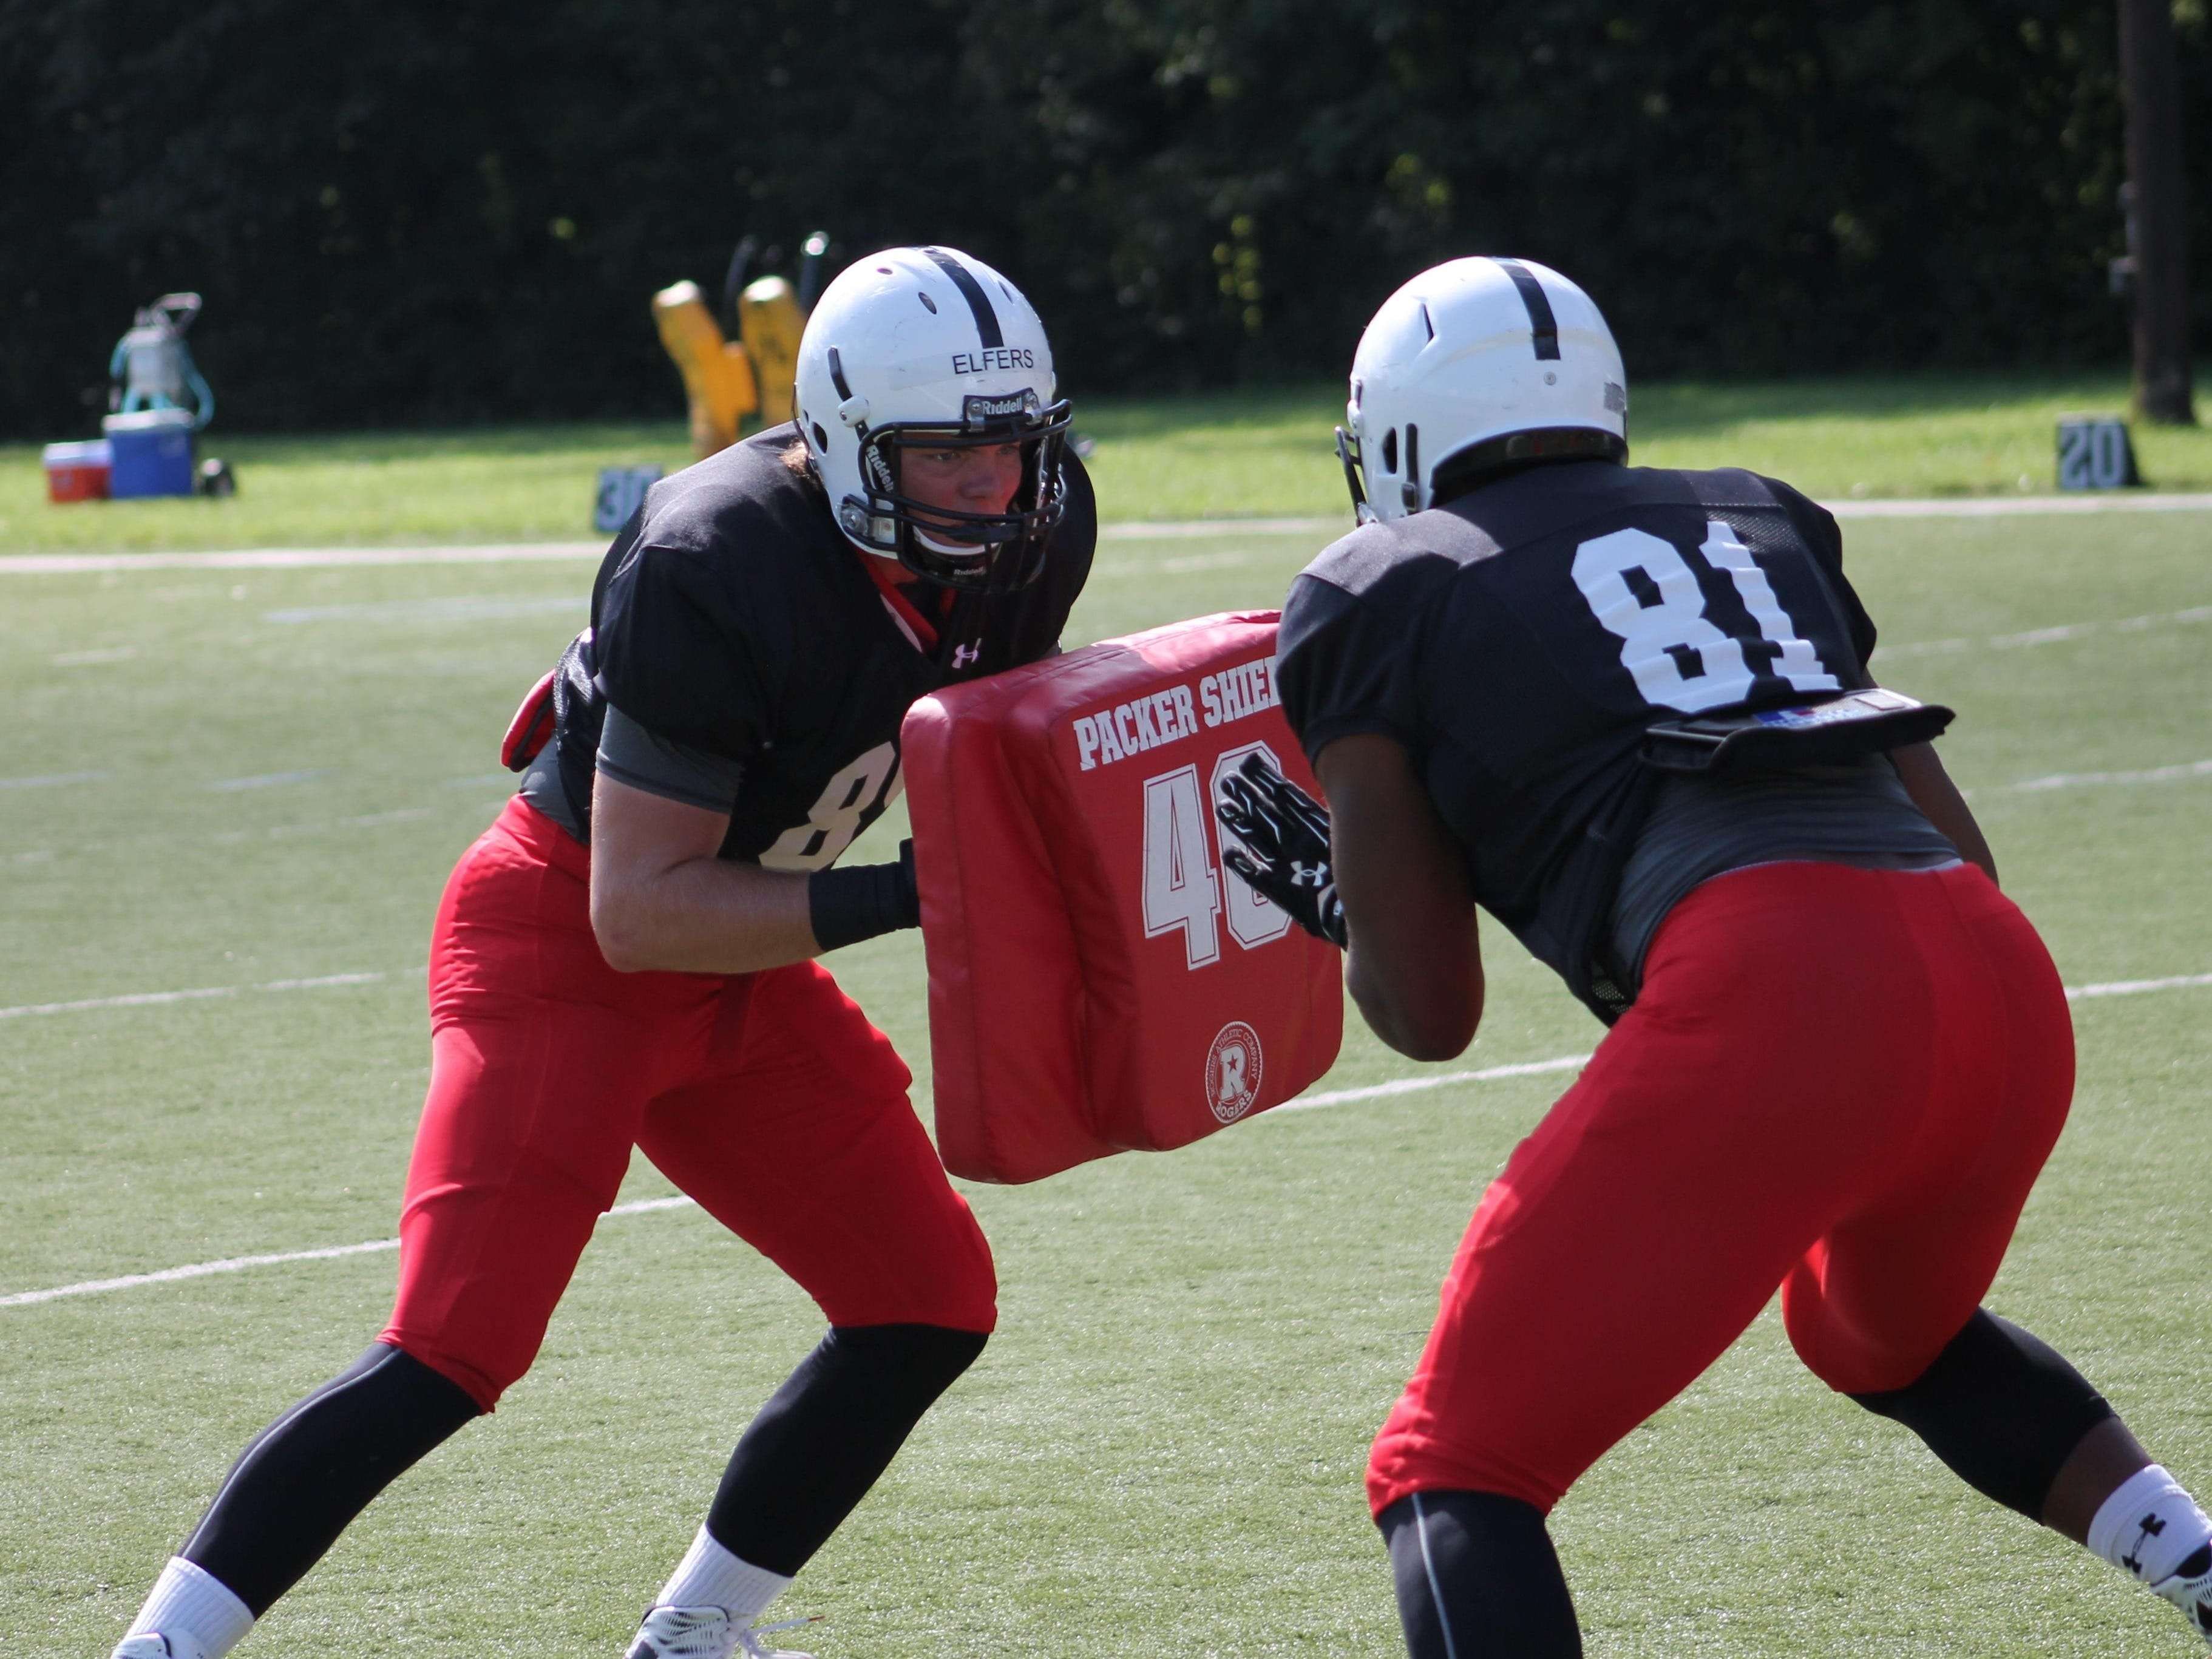 Redshirt freshman Jake Elfers works on a blocking drill with UC starting tight end D.J. Dowdy (No. 81).